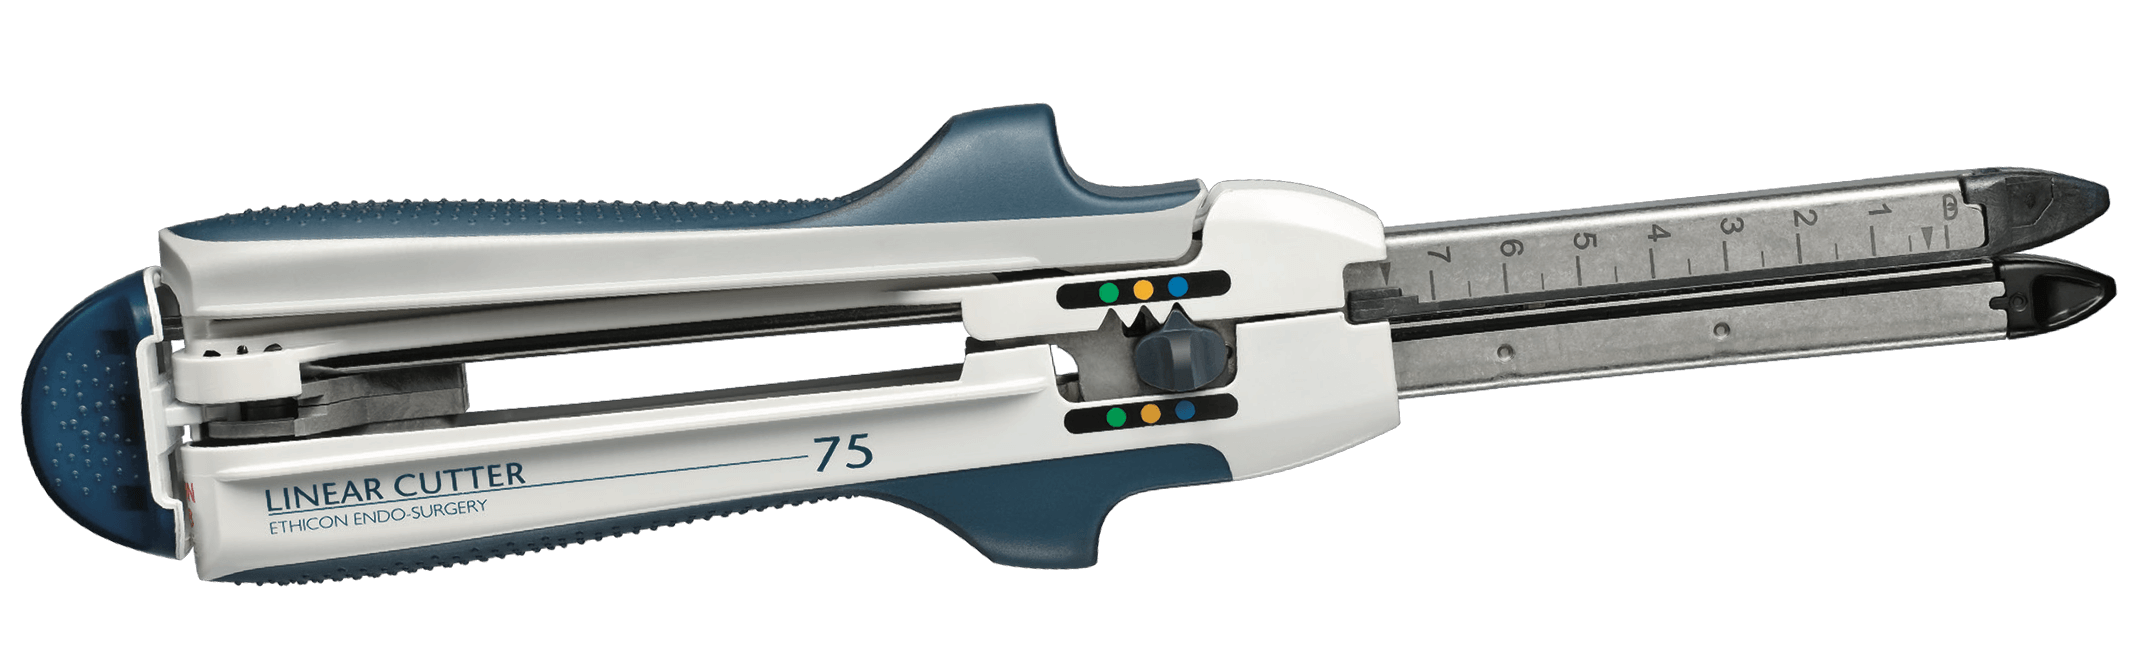 Ethicon Endo Cutter Related Keywords & Suggestions - Ethicon Endo